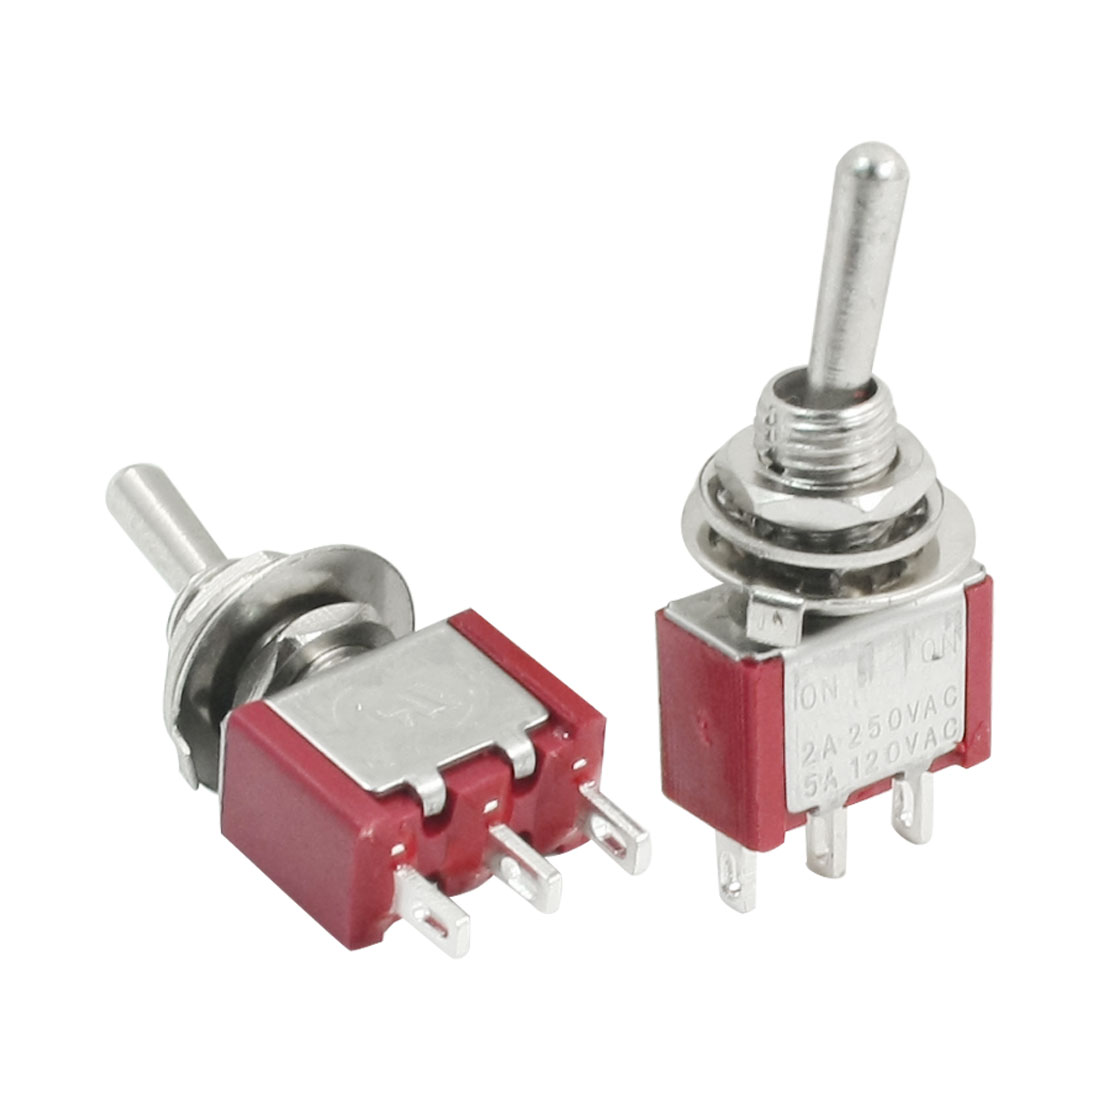 AC 250V 2A SPDT 3 Pin ON/ON Latching Control Toggle Switches 2pcs